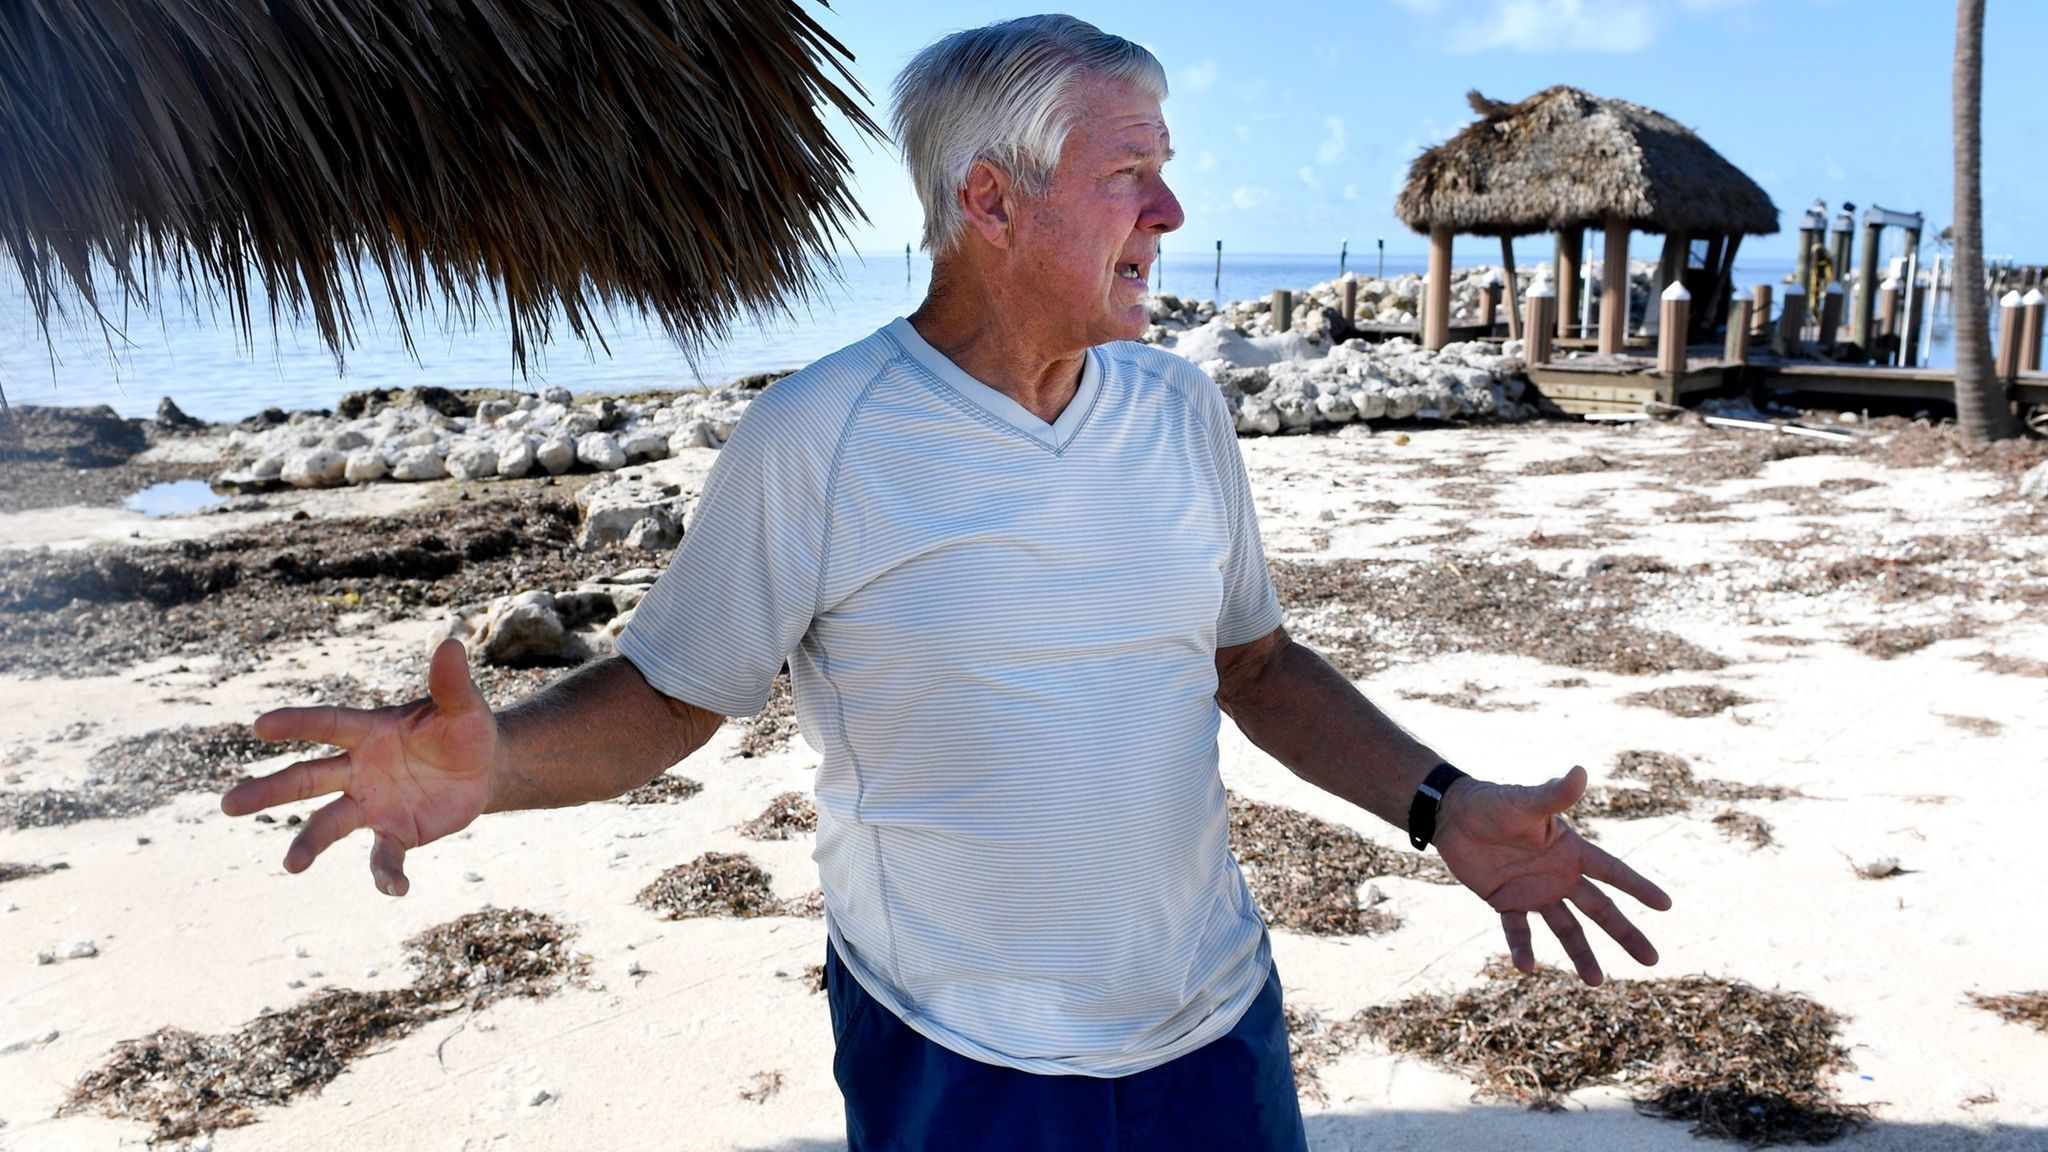 Hyde Jimmy Johnson In Pain In Tears And In Resolve To